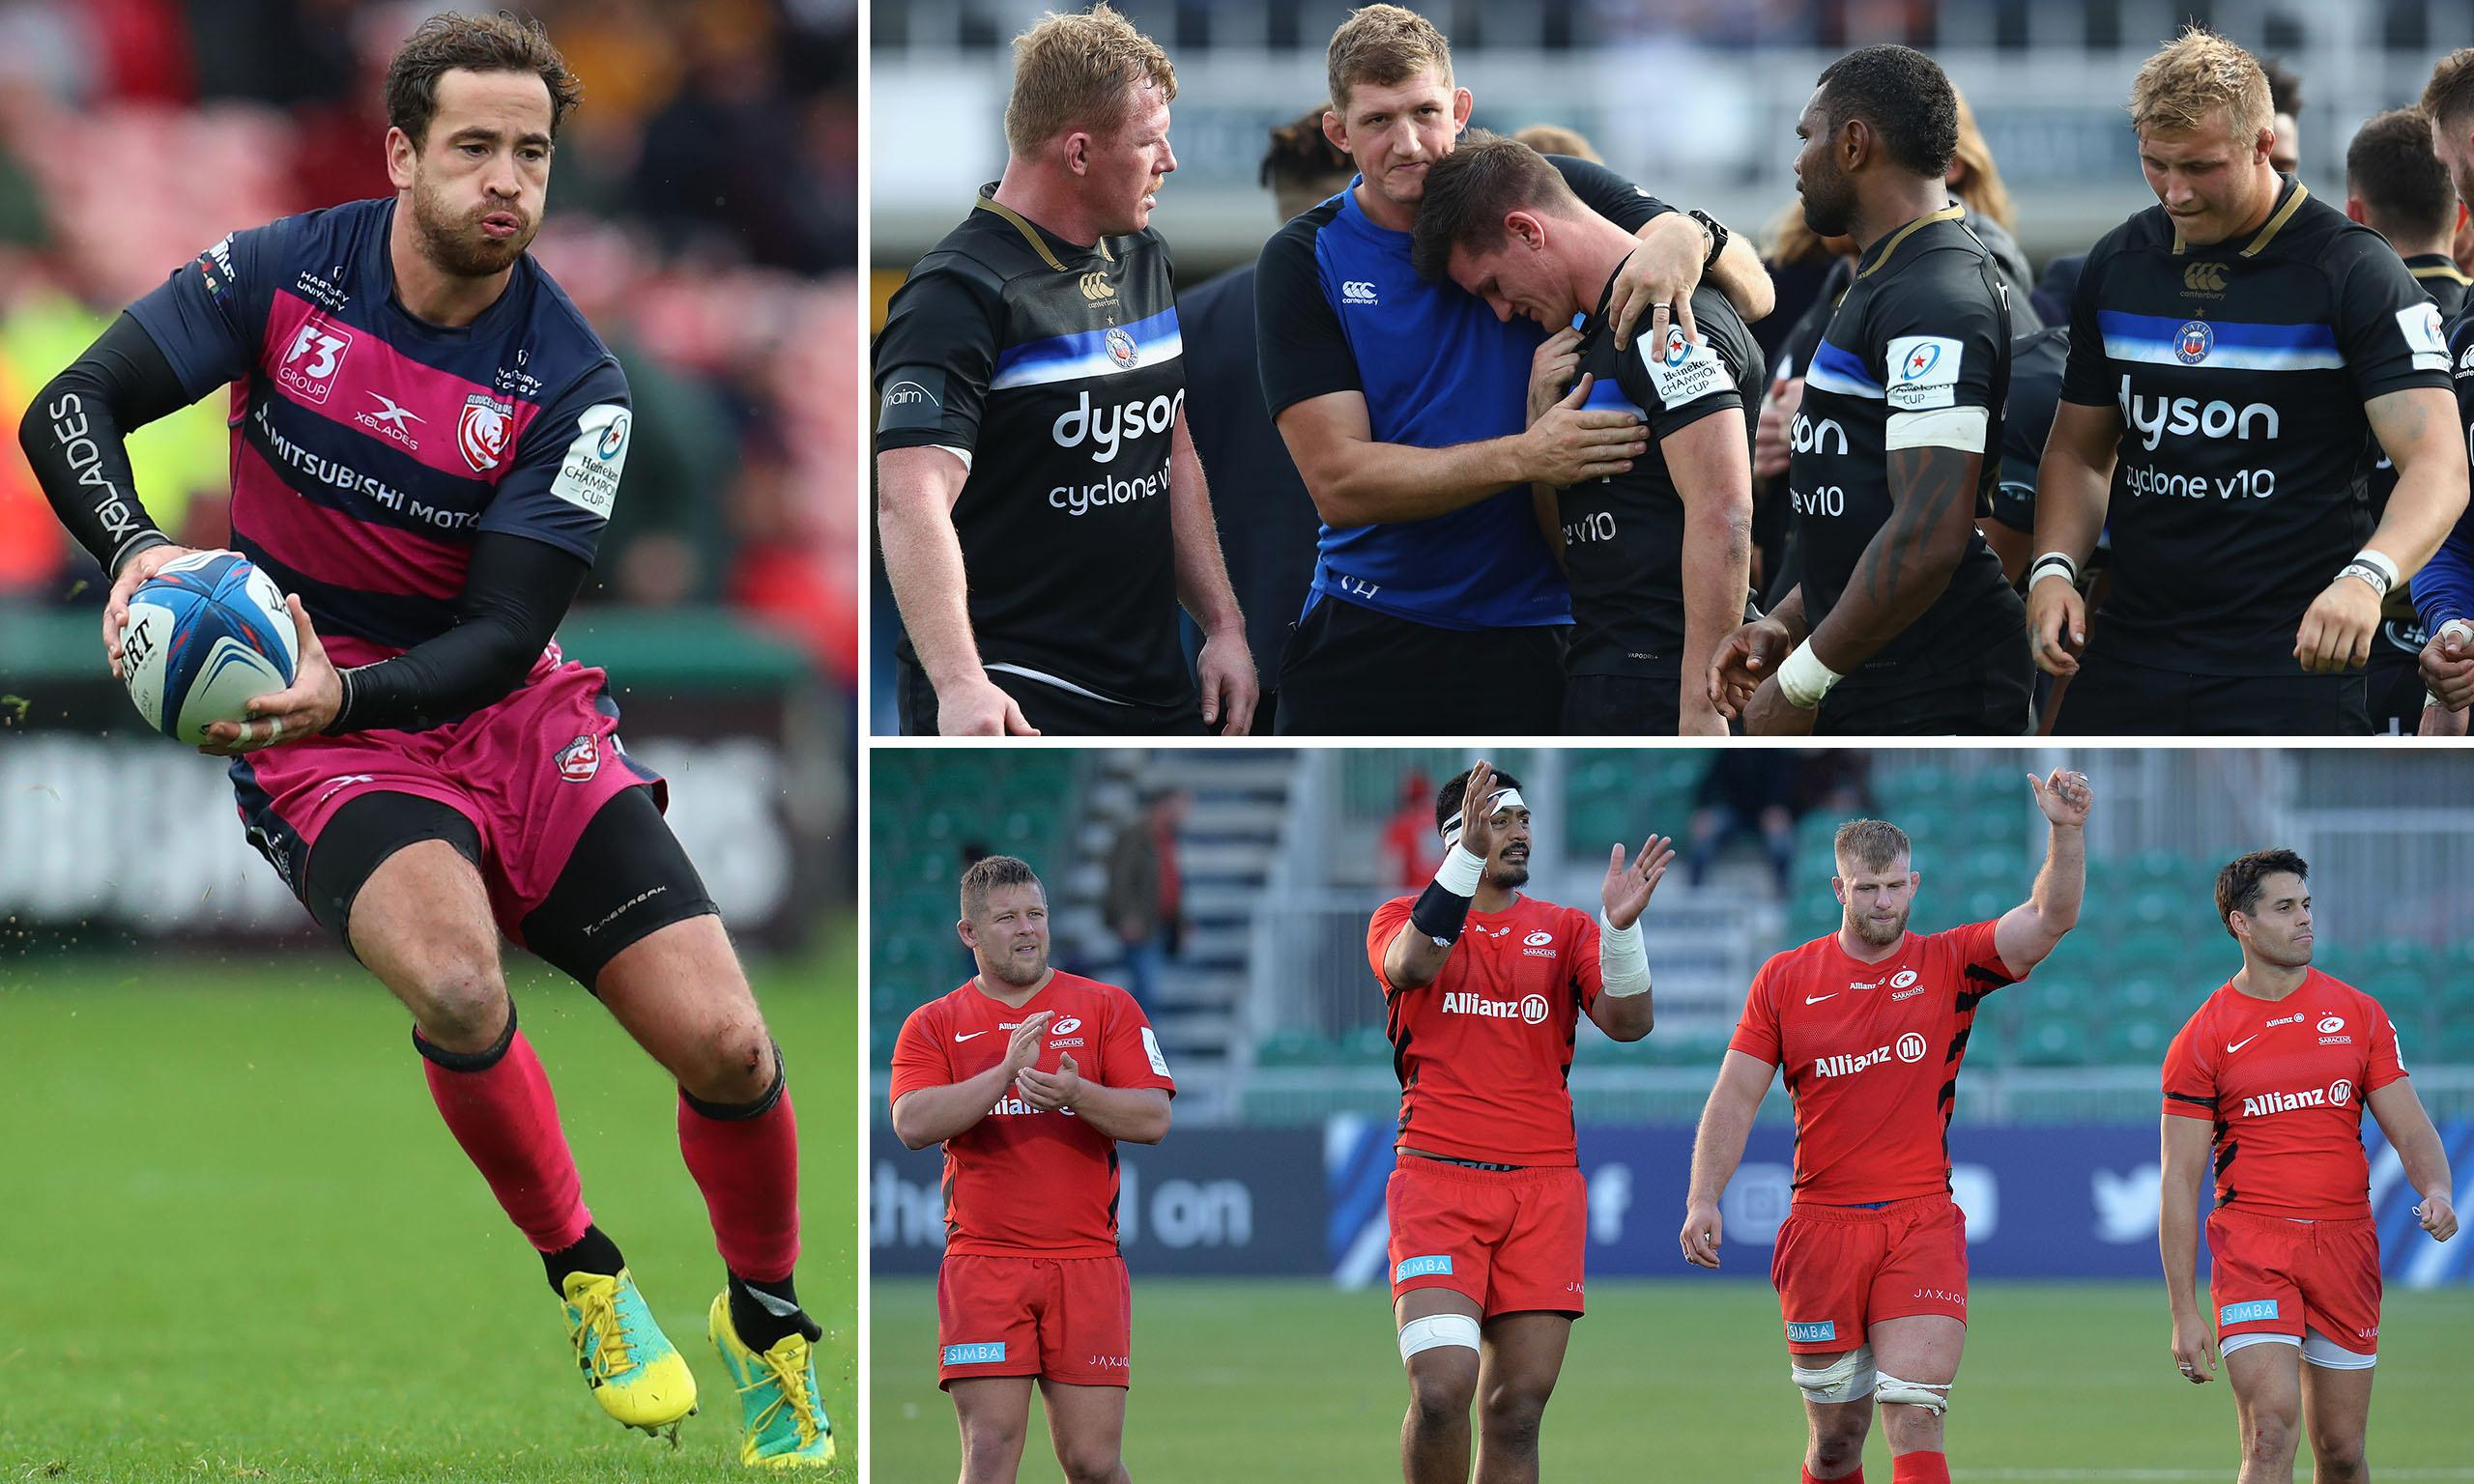 Rugby union: talking points from the European Champions Cup